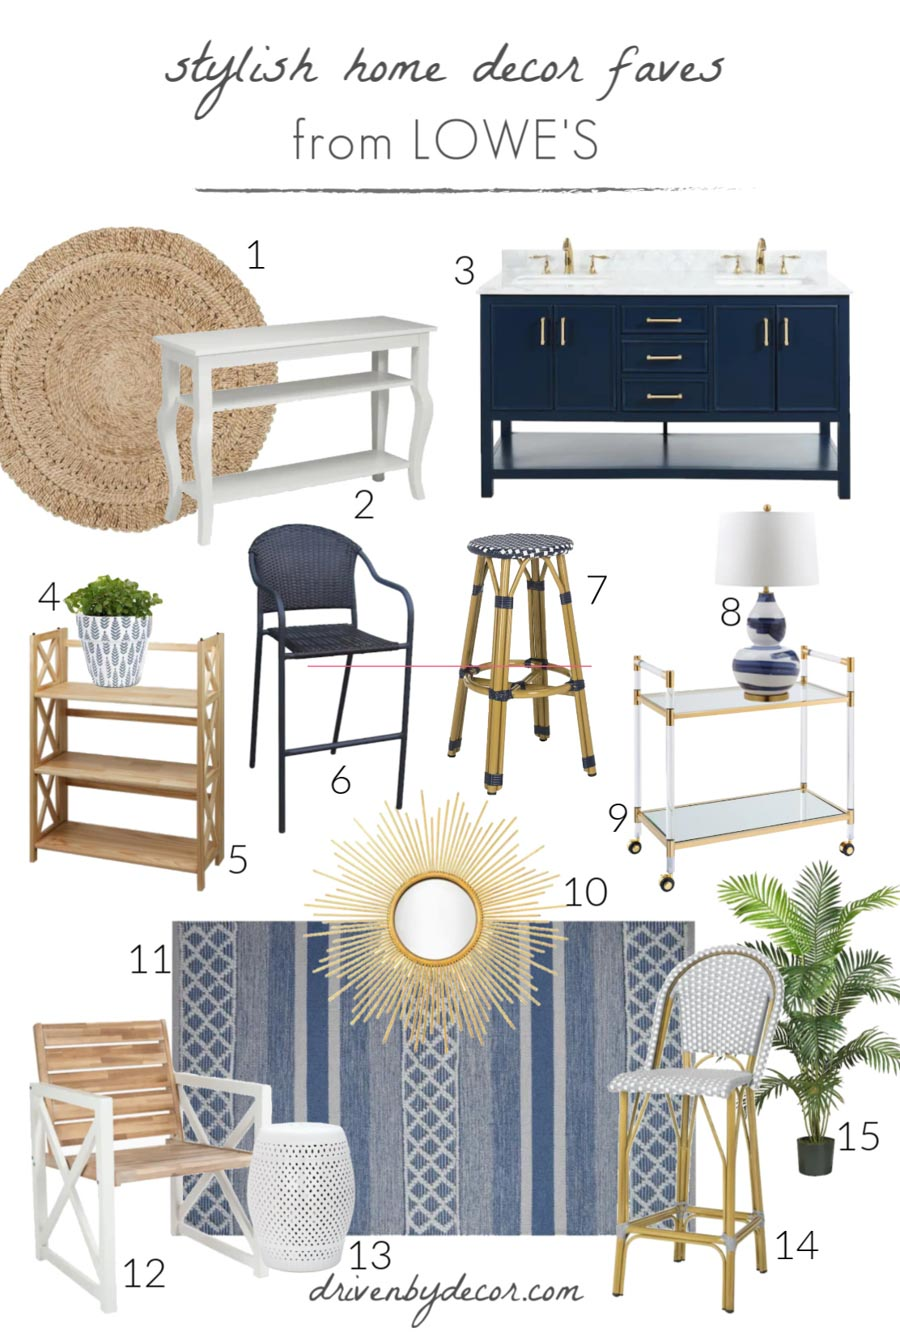 My favorite stylish home decor pieces from Lowe's - each on is linked in my post!